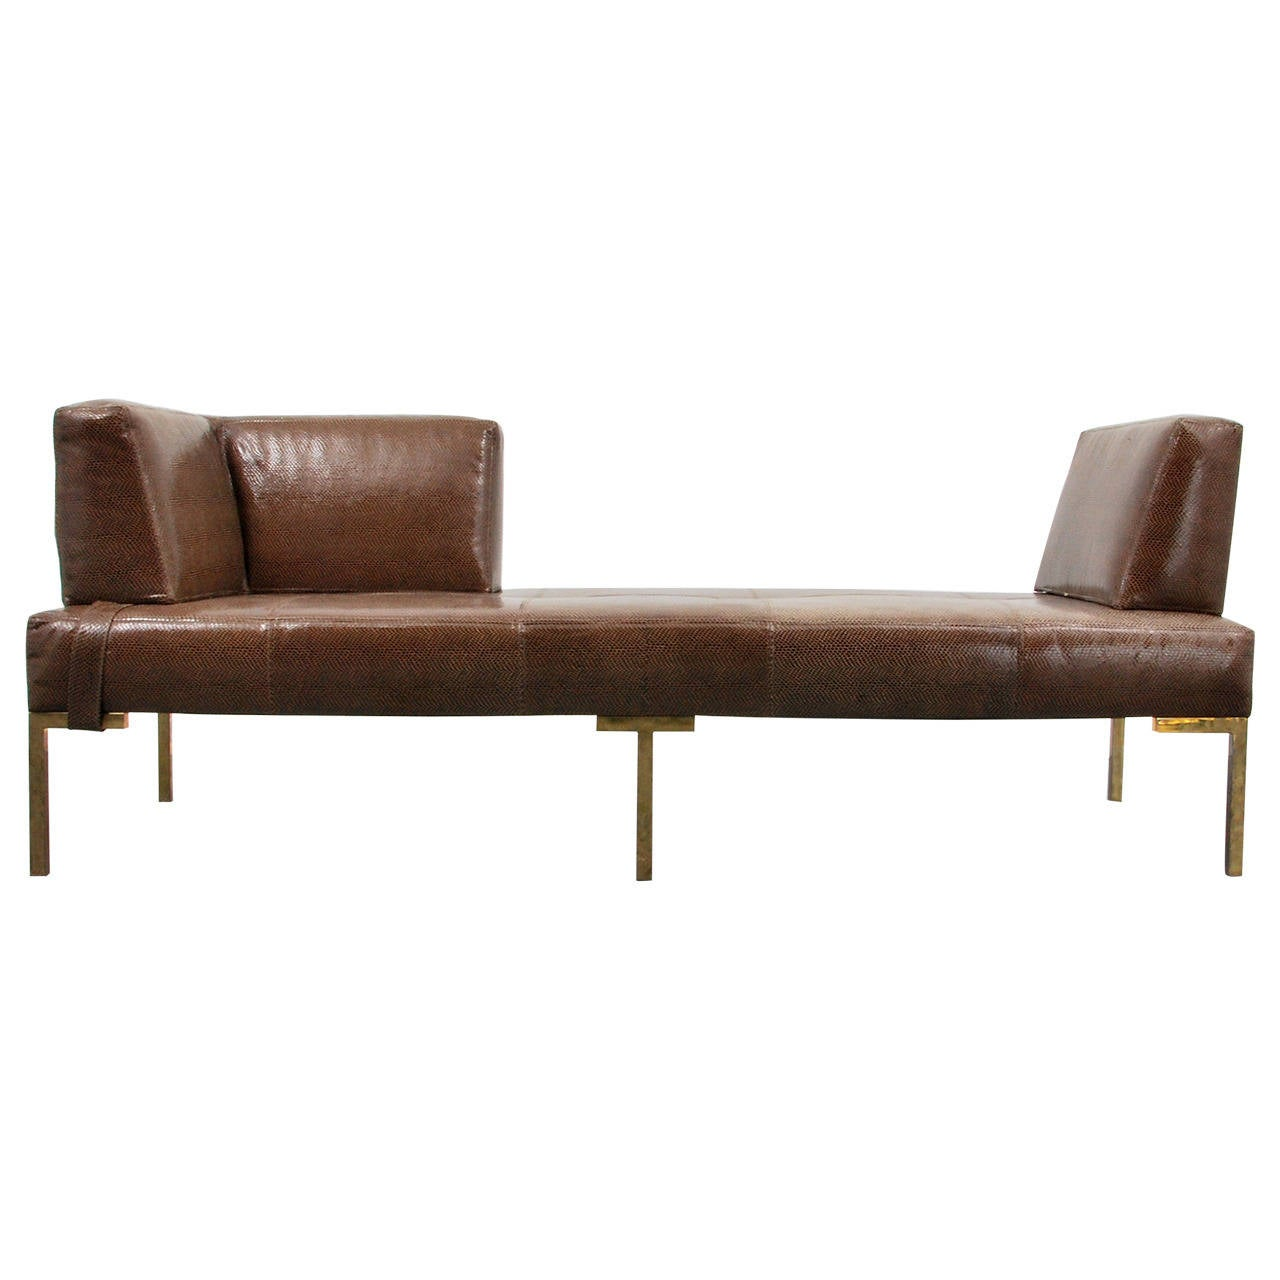 Luigi gentile leather daybeds or chaise lounges two for Chaise leather lounges